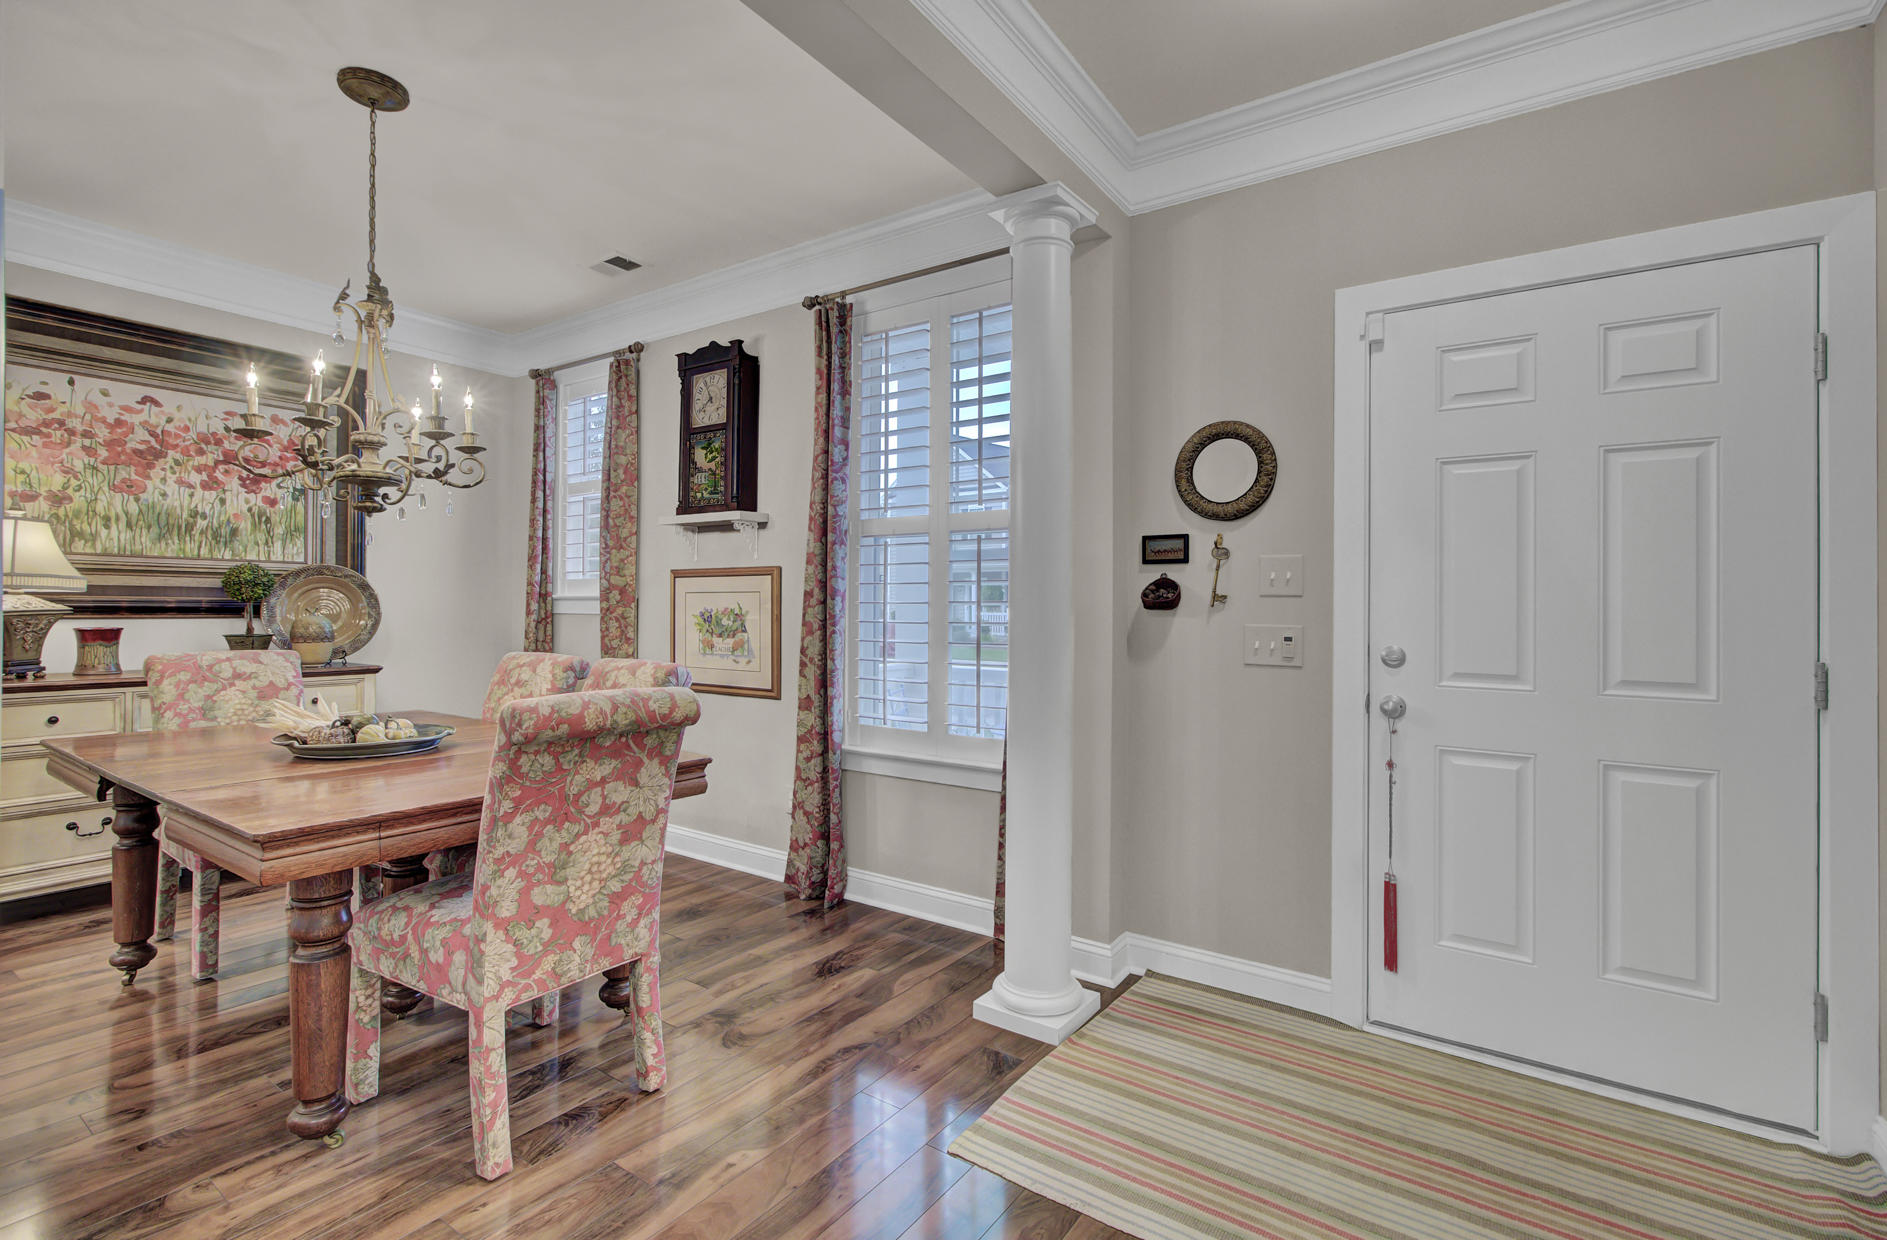 Boltons Landing Homes For Sale - 3034 Scuba, Charleston, SC - 18